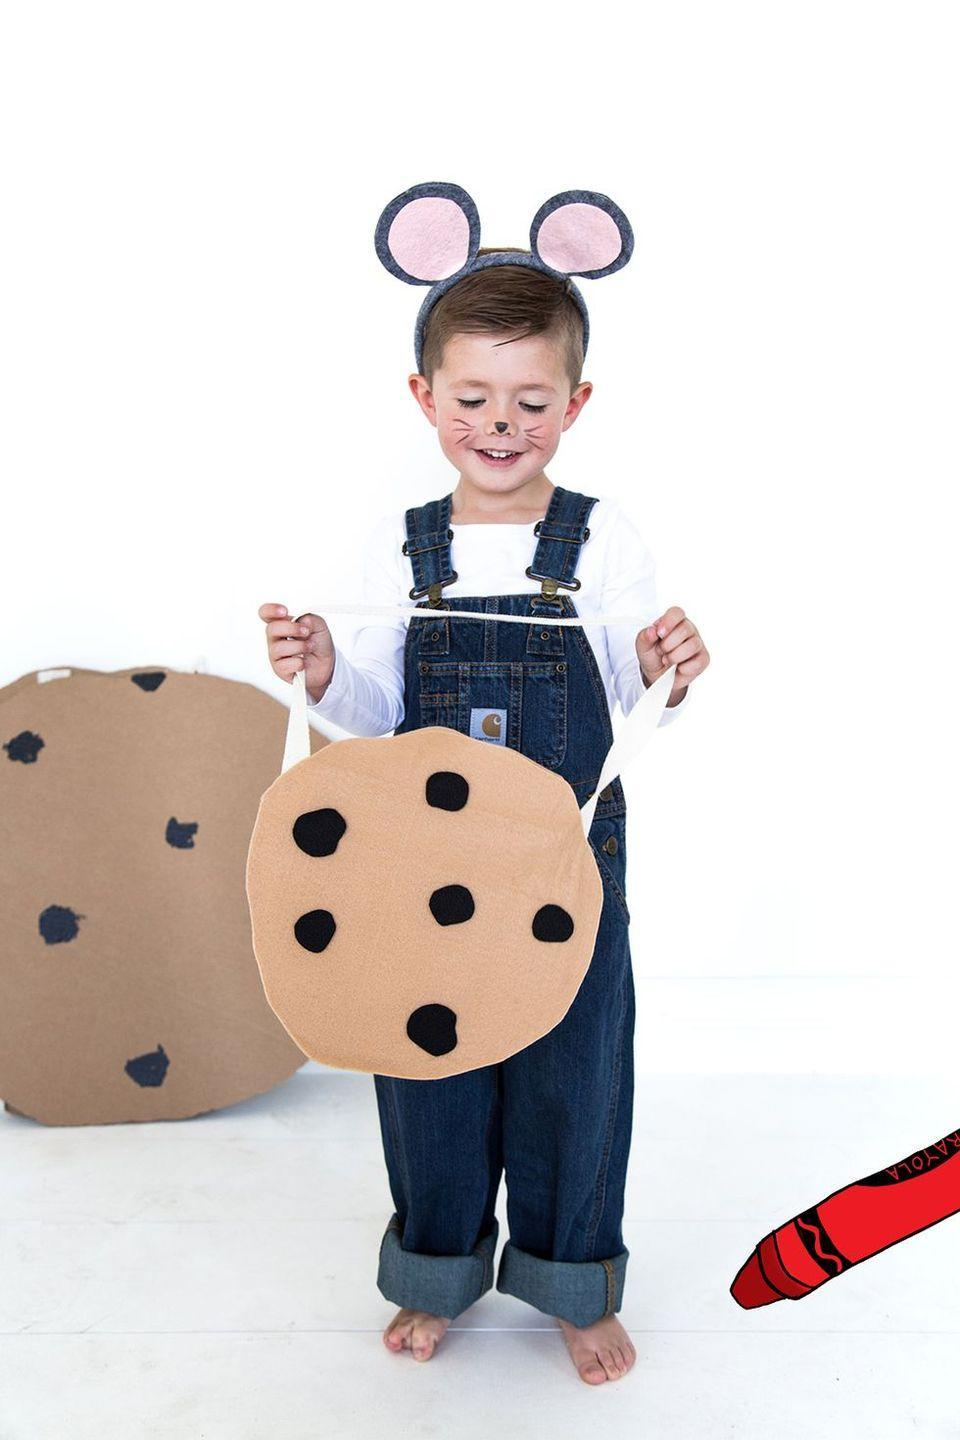 """<p>Grab a pair of overalls and two large pieces of cardboard, then craft your way through this adorable, instantly recognizable costume. (Bonus points if you bring along a few real cookies for Halloween snacking!) </p><p><strong>Get the tutorial at <a href=""""http://thehousethatlarsbuilt.com/2015/10/if-you-give-a-mouse-a-cookie-costumes.html/"""" rel=""""nofollow noopener"""" target=""""_blank"""" data-ylk=""""slk:The House That Lars Built"""" class=""""link rapid-noclick-resp"""">The House That Lars Built</a>.</strong></p><p><strong><a class=""""link rapid-noclick-resp"""" href=""""https://go.redirectingat.com?id=74968X1596630&url=https%3A%2F%2Fwww.walmart.com%2Fsearch%2F%3Fquery%3Dmouse%2Bears&sref=https%3A%2F%2Fwww.thepioneerwoman.com%2Fholidays-celebrations%2Fg37014285%2Fbook-character-costumes%2F"""" rel=""""nofollow noopener"""" target=""""_blank"""" data-ylk=""""slk:SHOP MOUSE EARS"""">SHOP MOUSE EARS</a></strong></p>"""